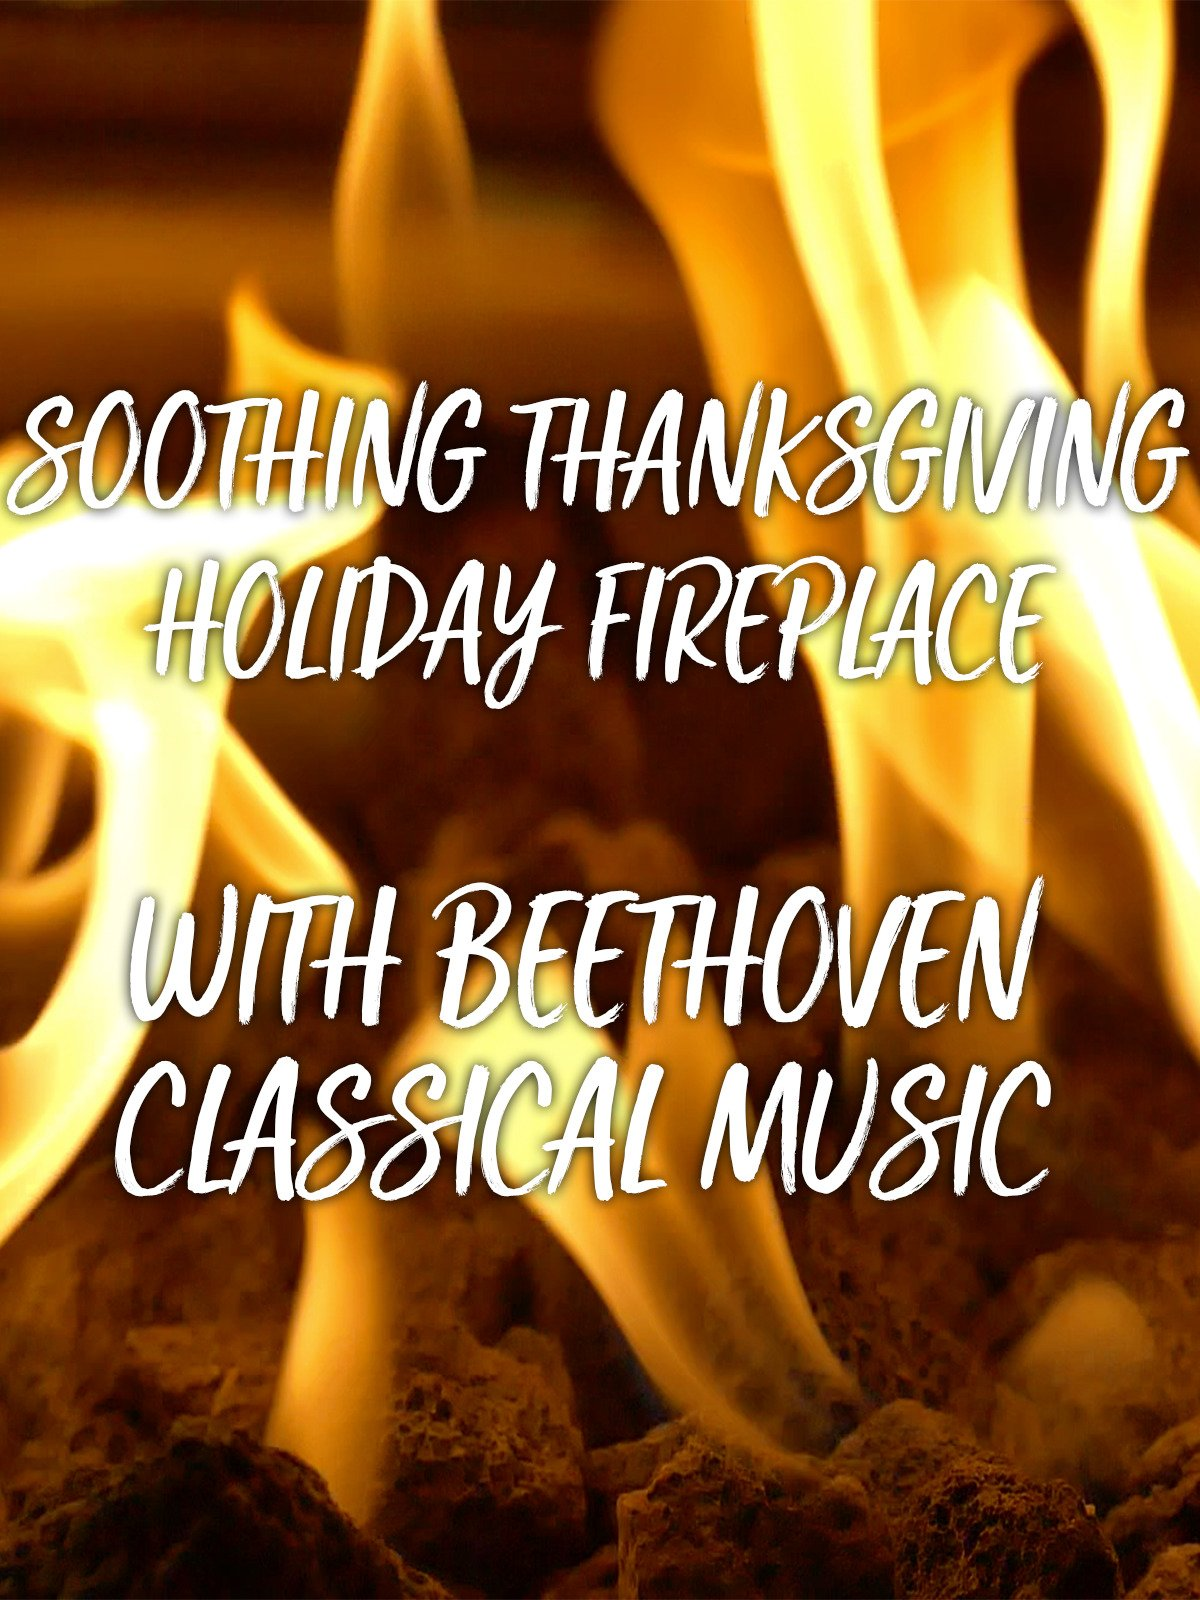 Soothing Thanksgiving Holiday Fireplace with Beethoven Classical Music